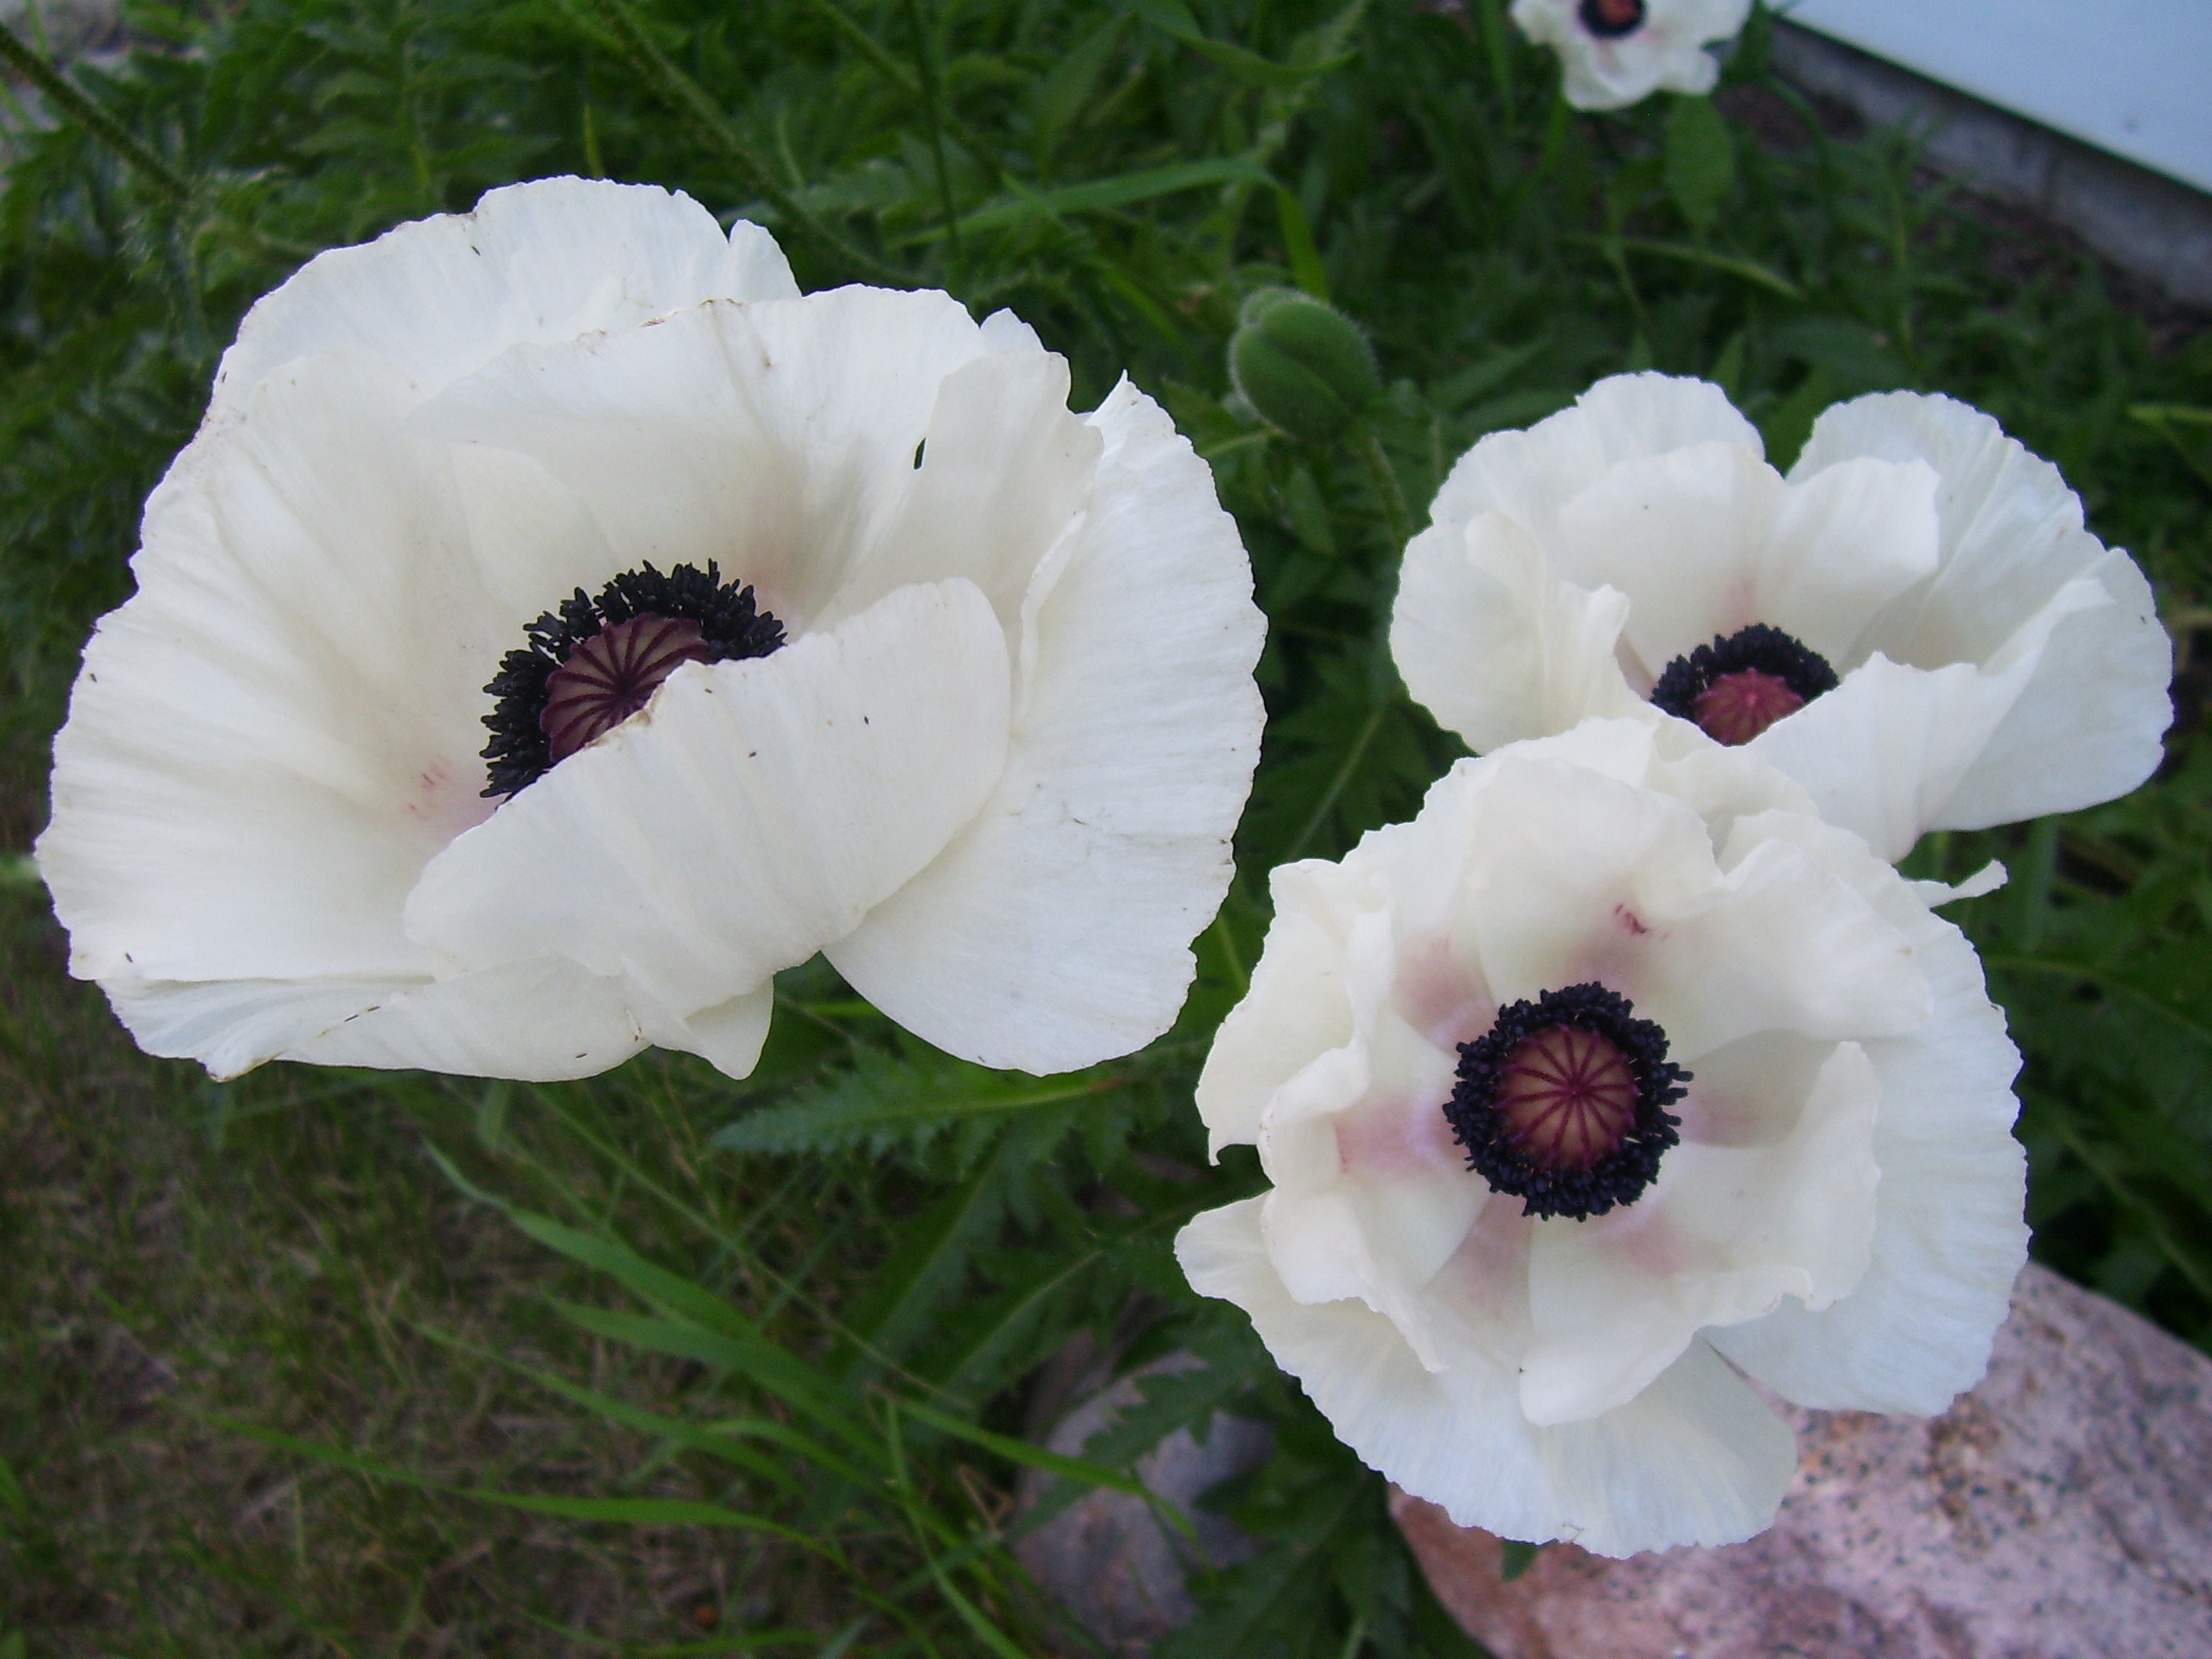 Free photo white poppy flower outdoors nature natural free poppy flower white images flower decoration ideas mightylinksfo